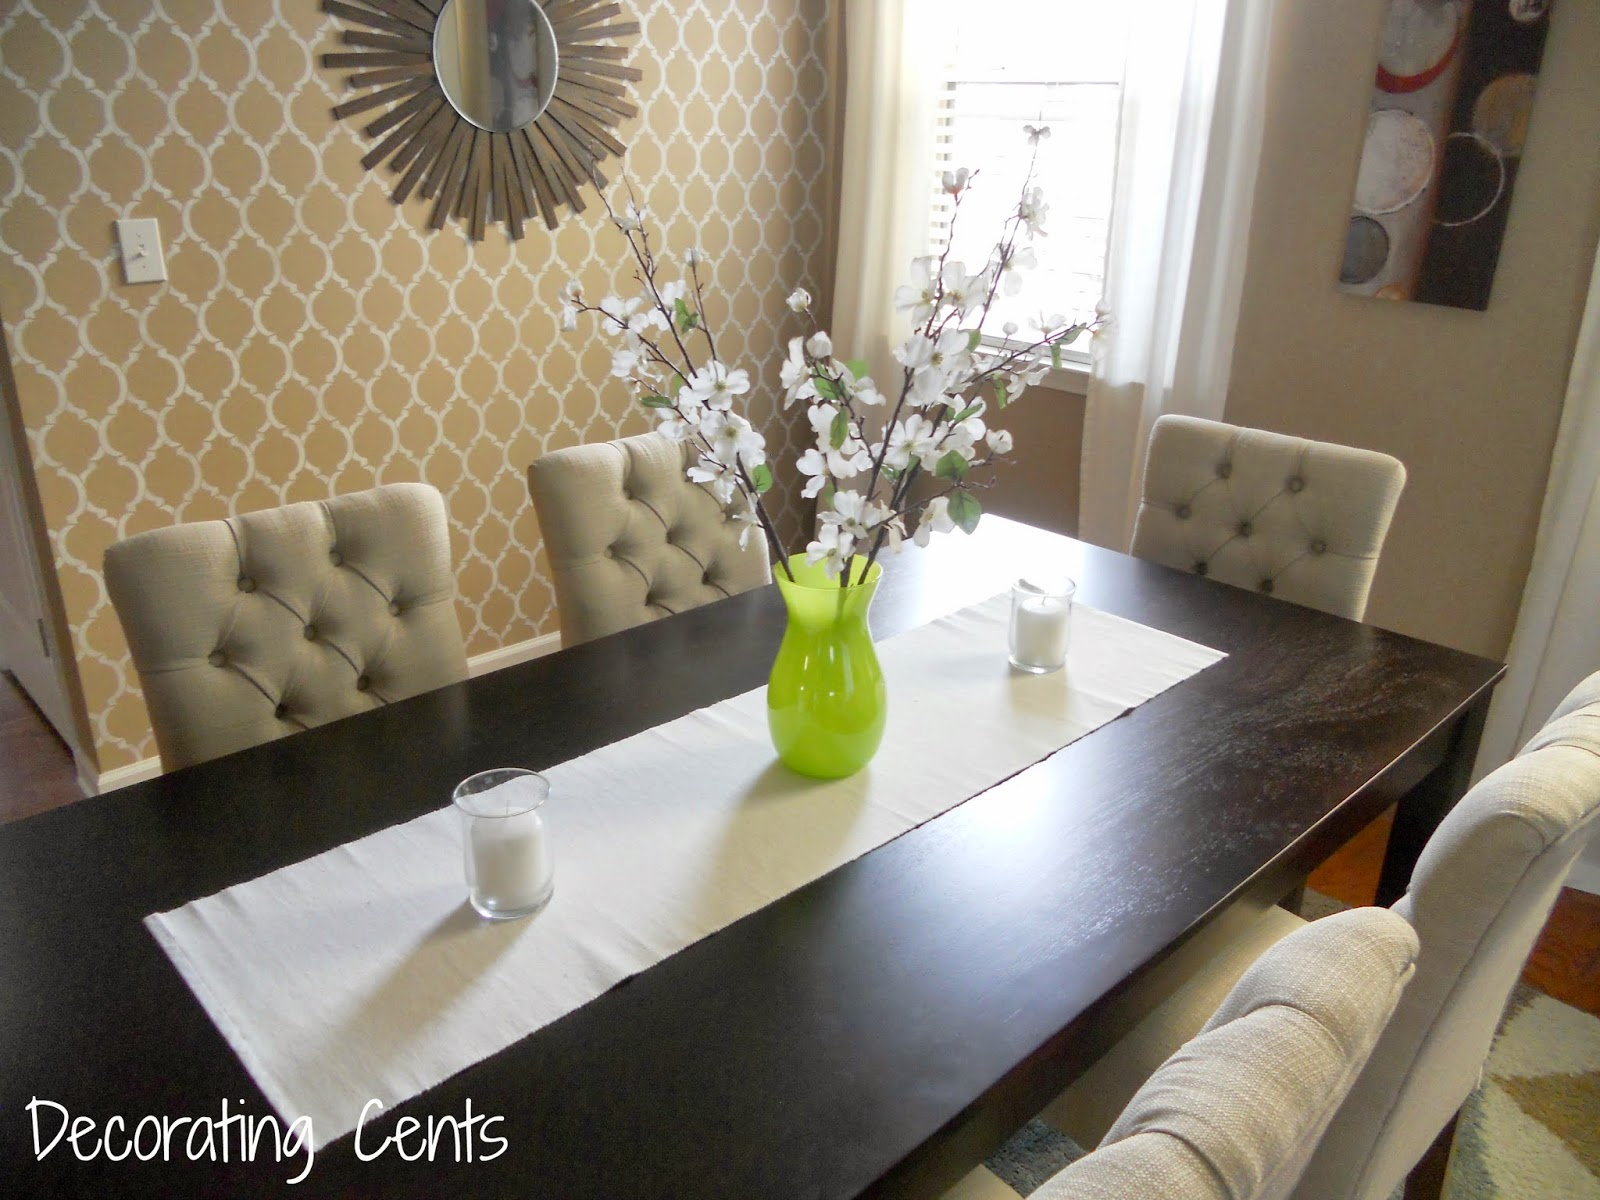 Decorating Cents Thanksgiving Table Decorating Cents The New ...